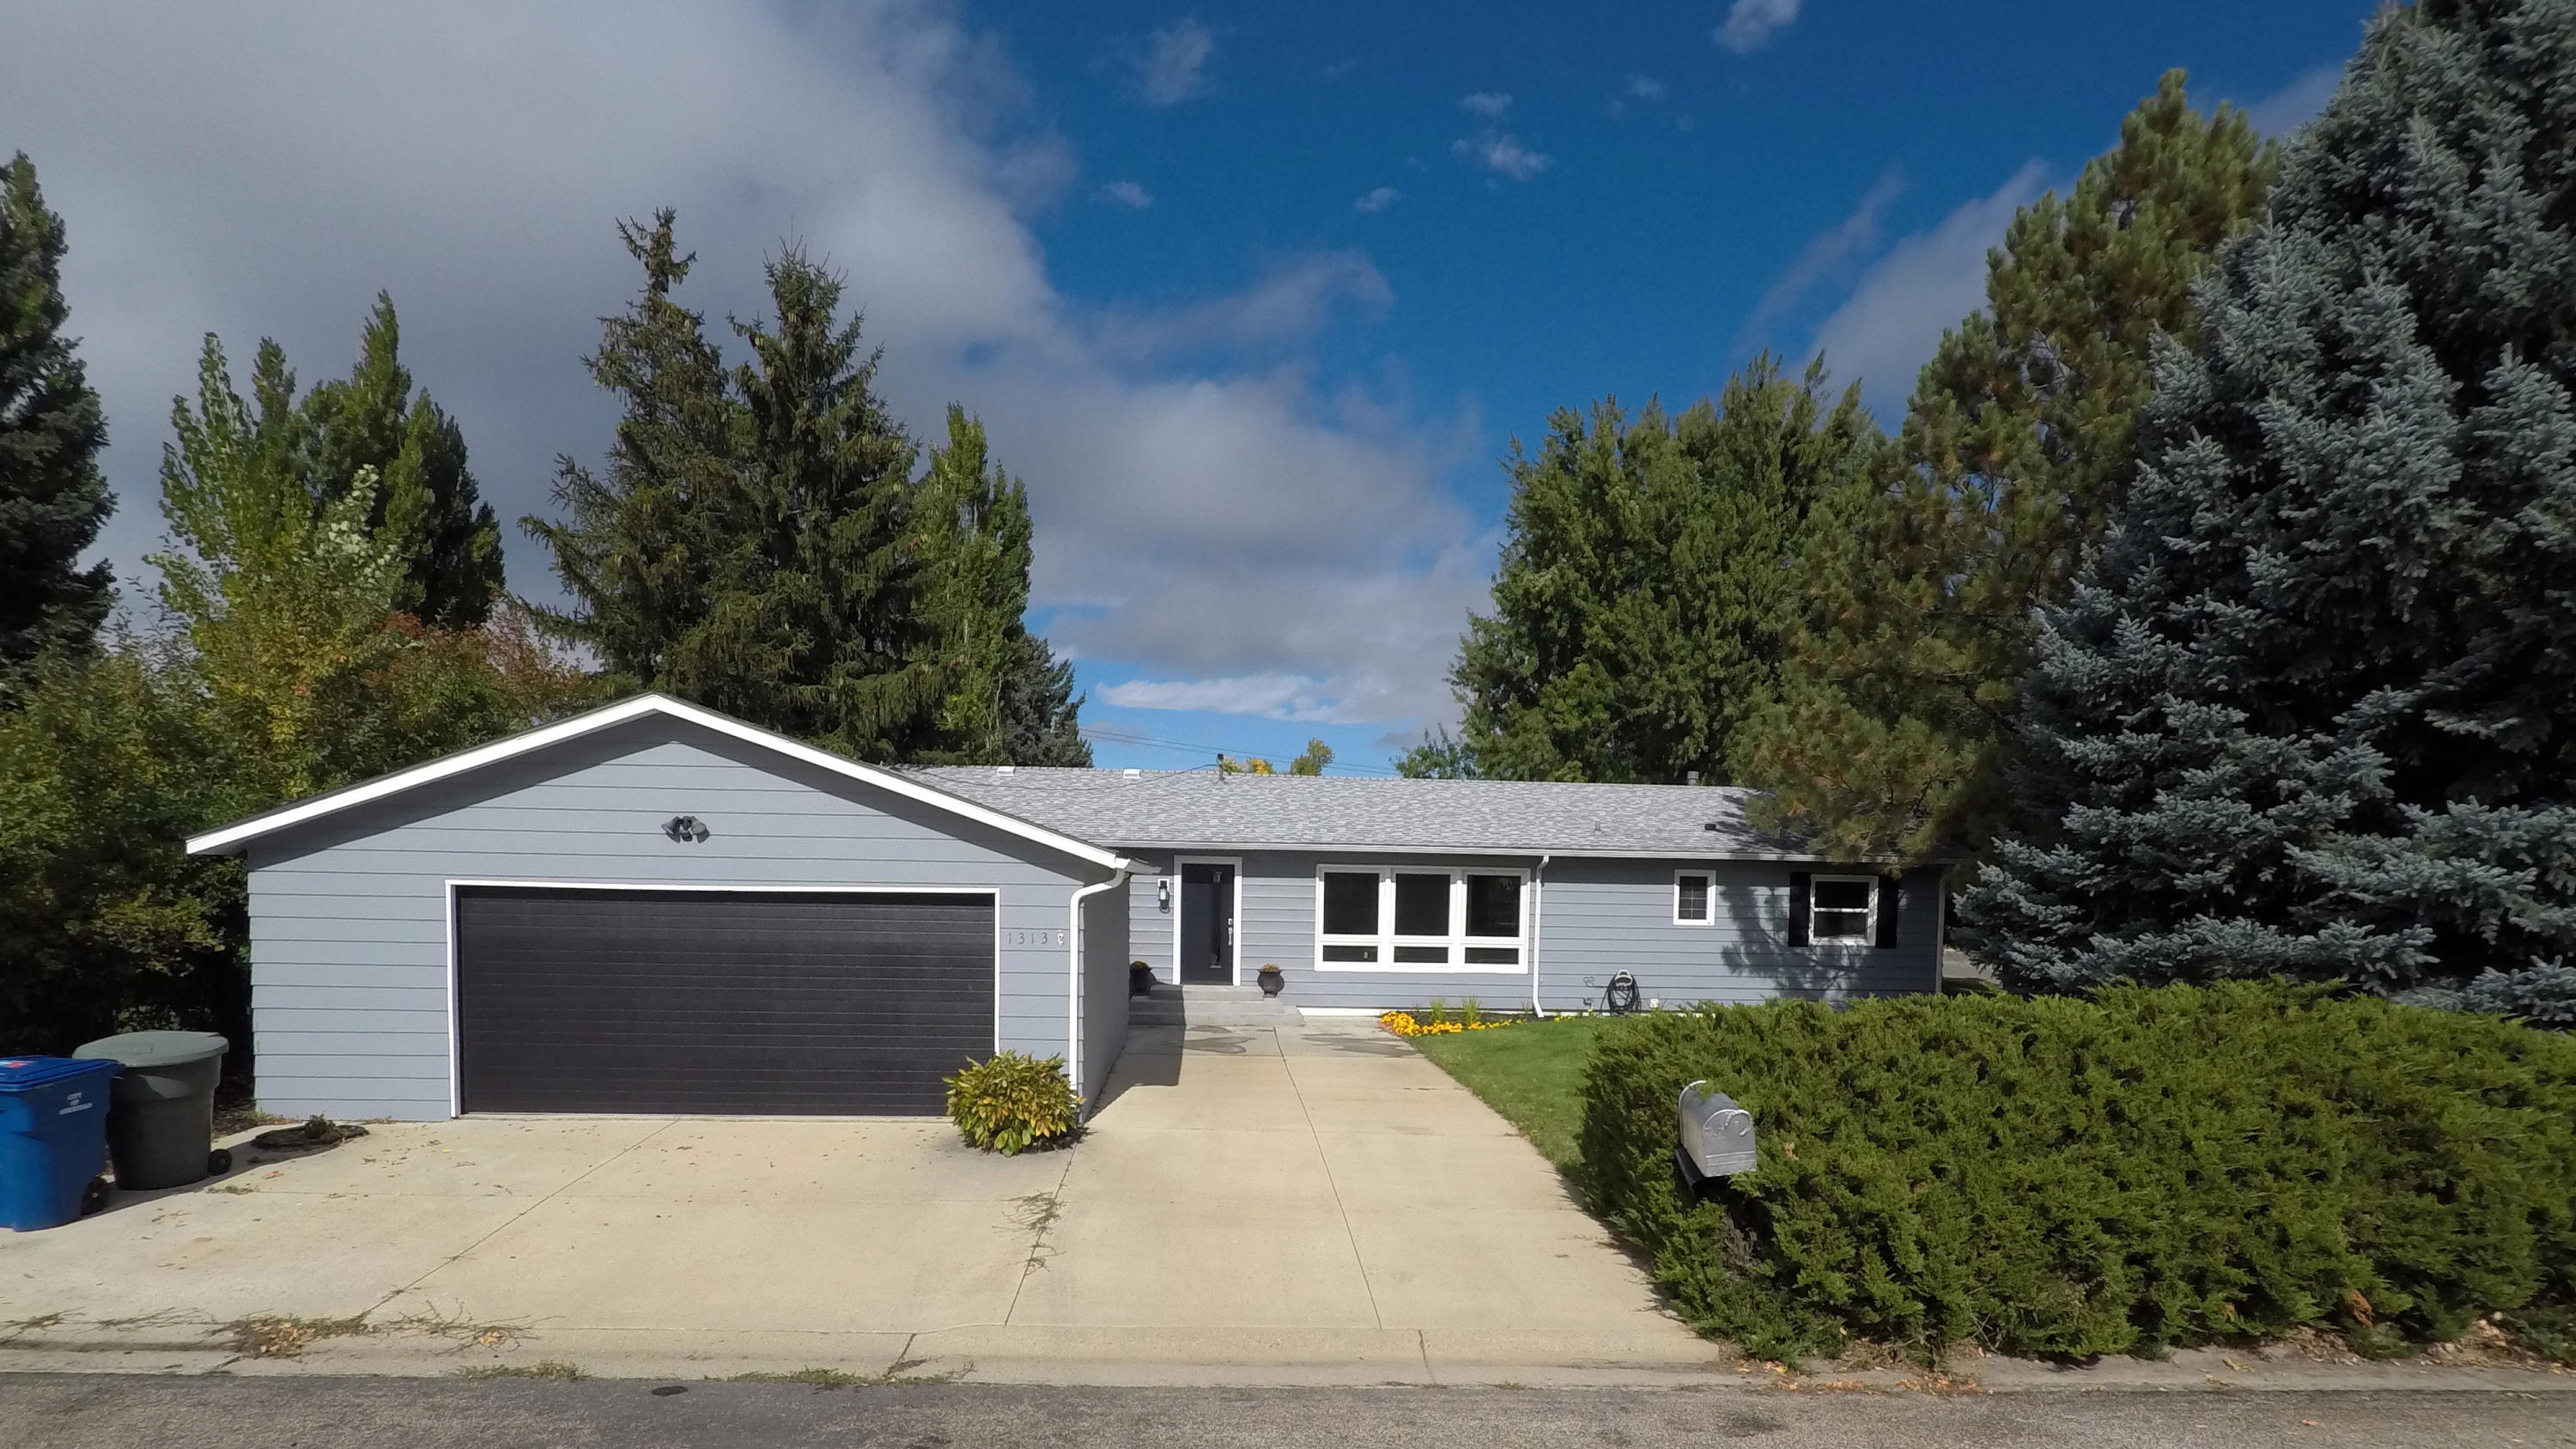 1313 Gage Place, Sheridan, Wyoming 82801, 5 Bedrooms Bedrooms, ,2 BathroomsBathrooms,Residential,For Sale,Gage,18-1039